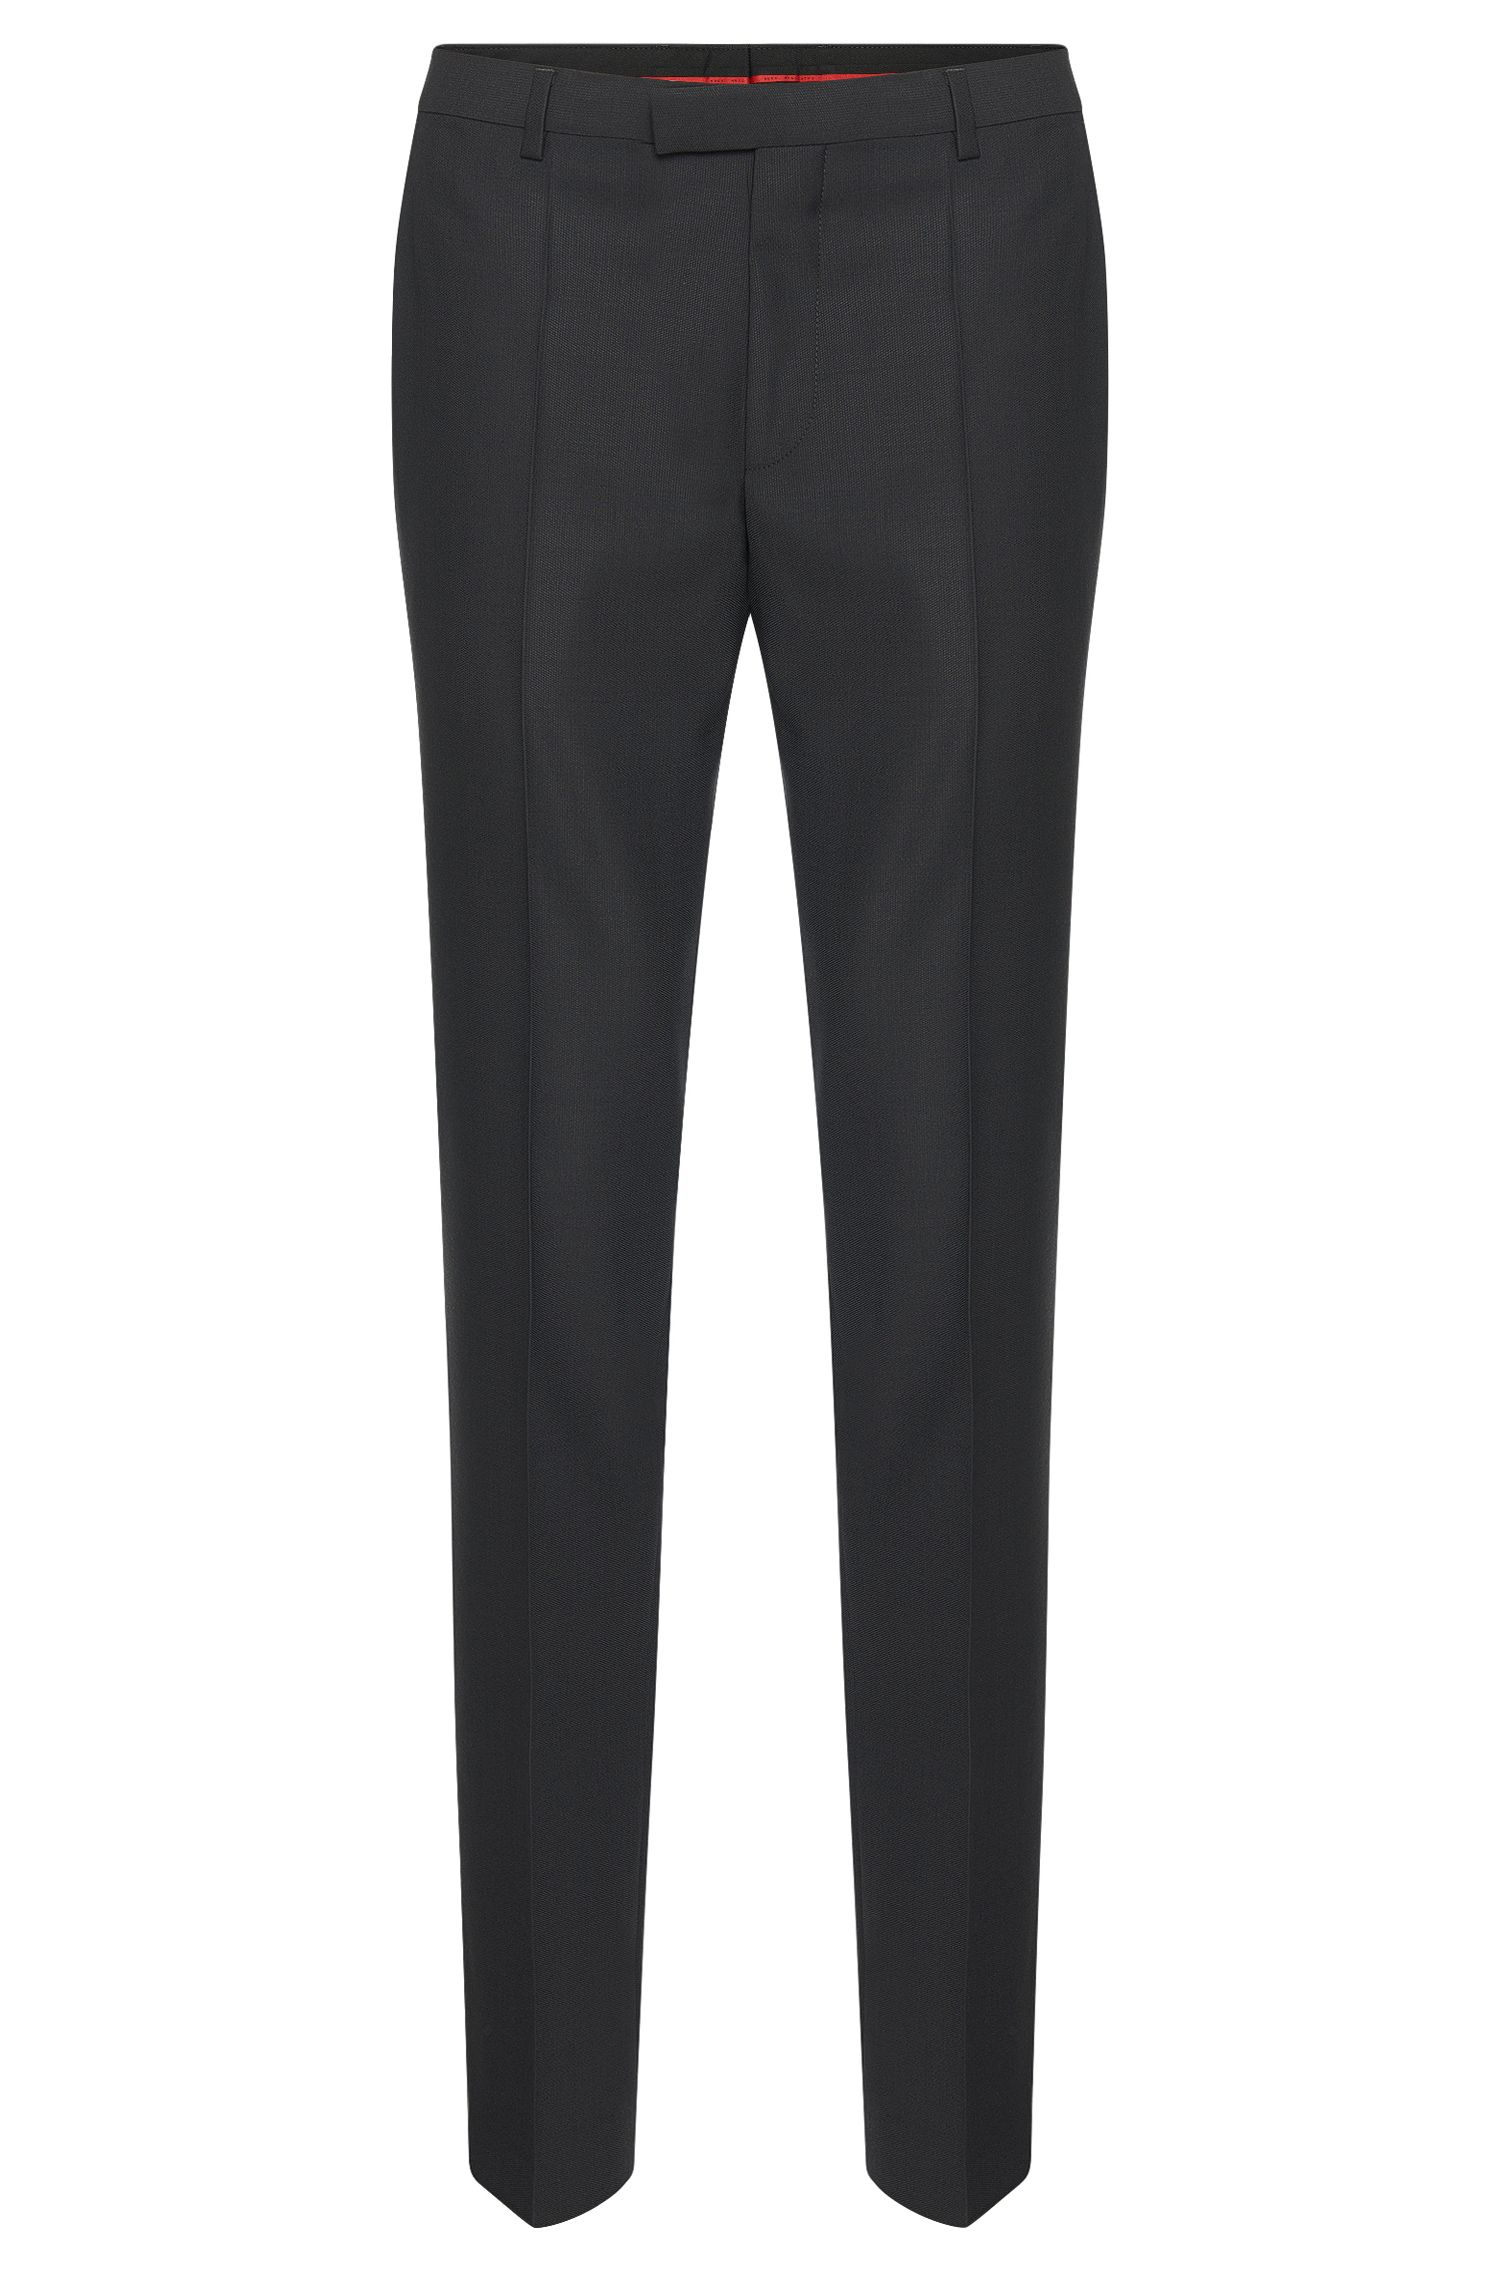 Pantalon HUGO Homme Regular Fit en laine vierge